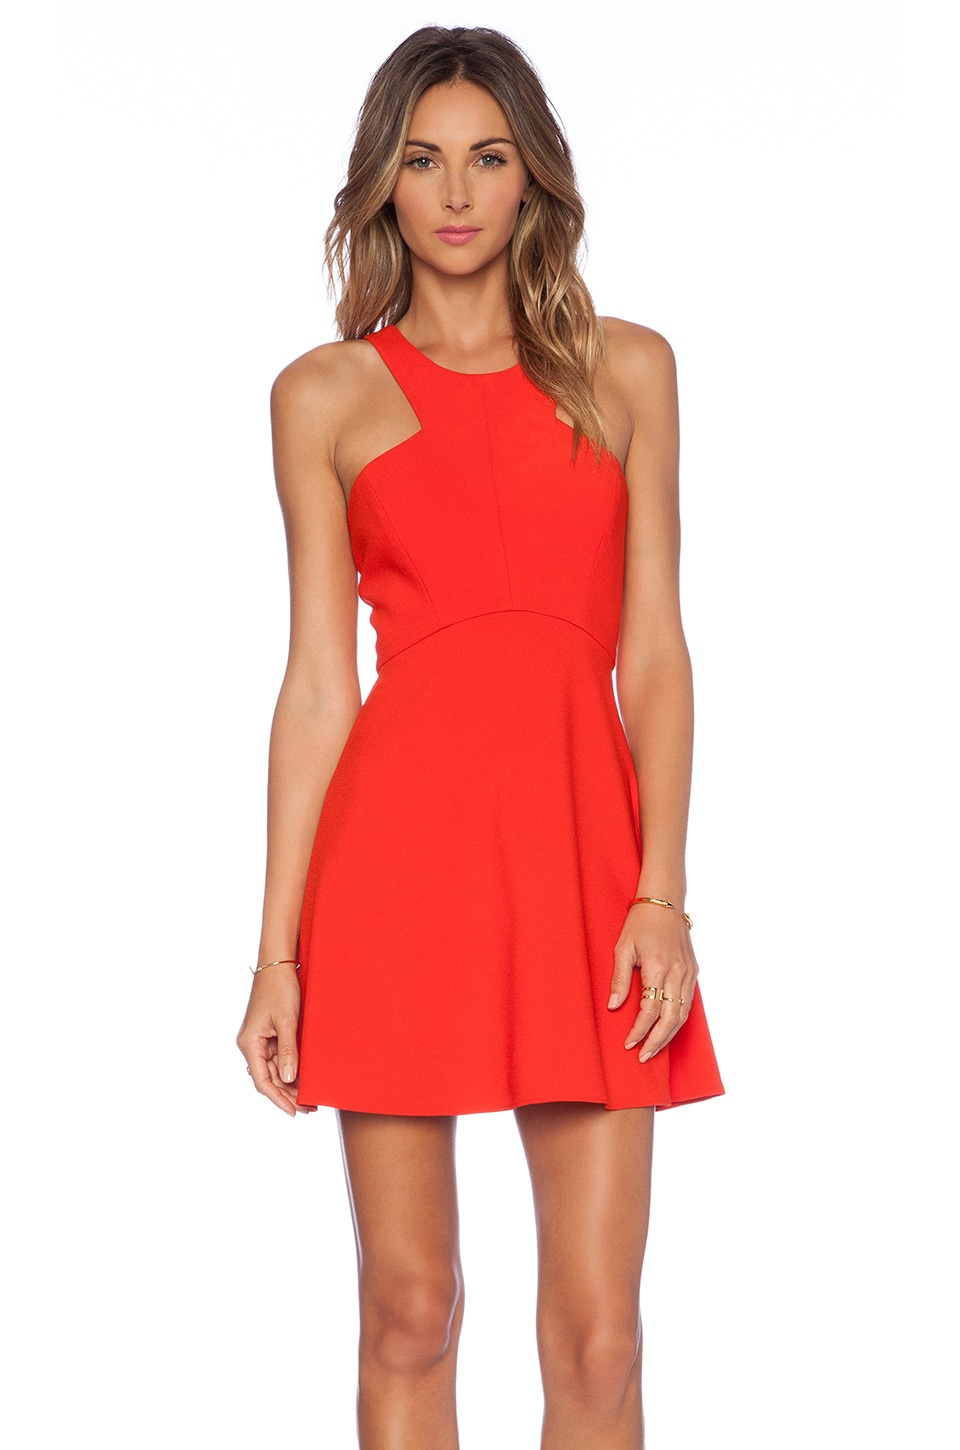 c5953a6c08 NBD x Naven Twins Believe Me Skater Dress in Poppy Red